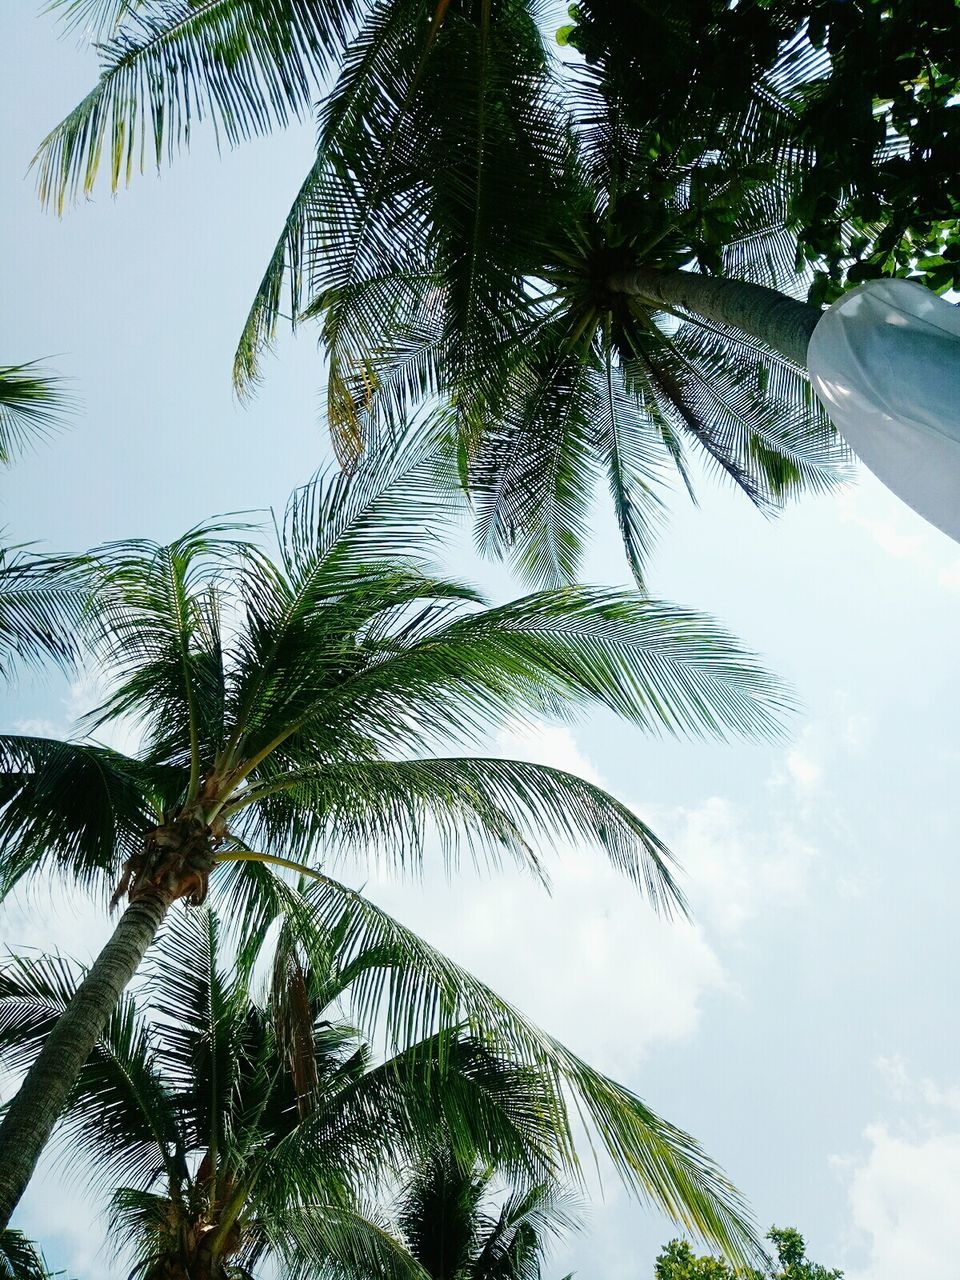 palm tree, tree, low angle view, green, sky, nature, growth, no people, leaf, day, beauty in nature, outdoors